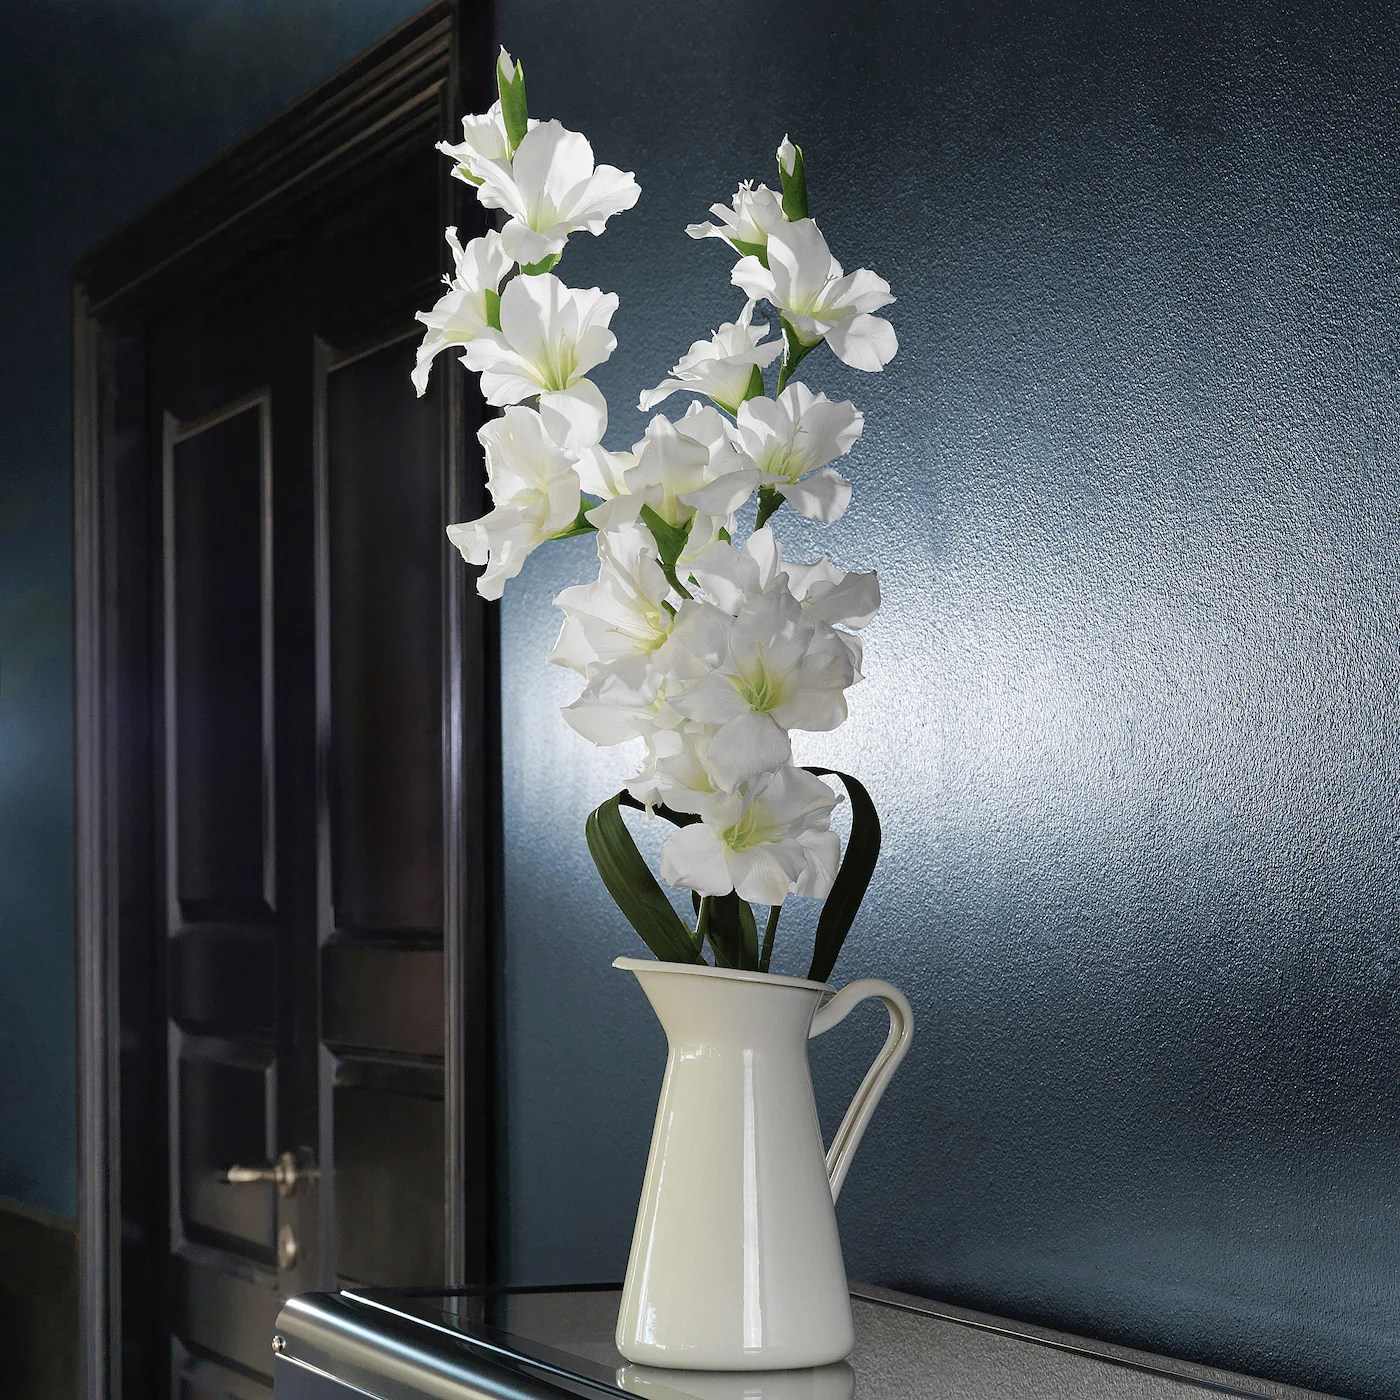 Smycka Gladiolus White Artificial Flower Ikea